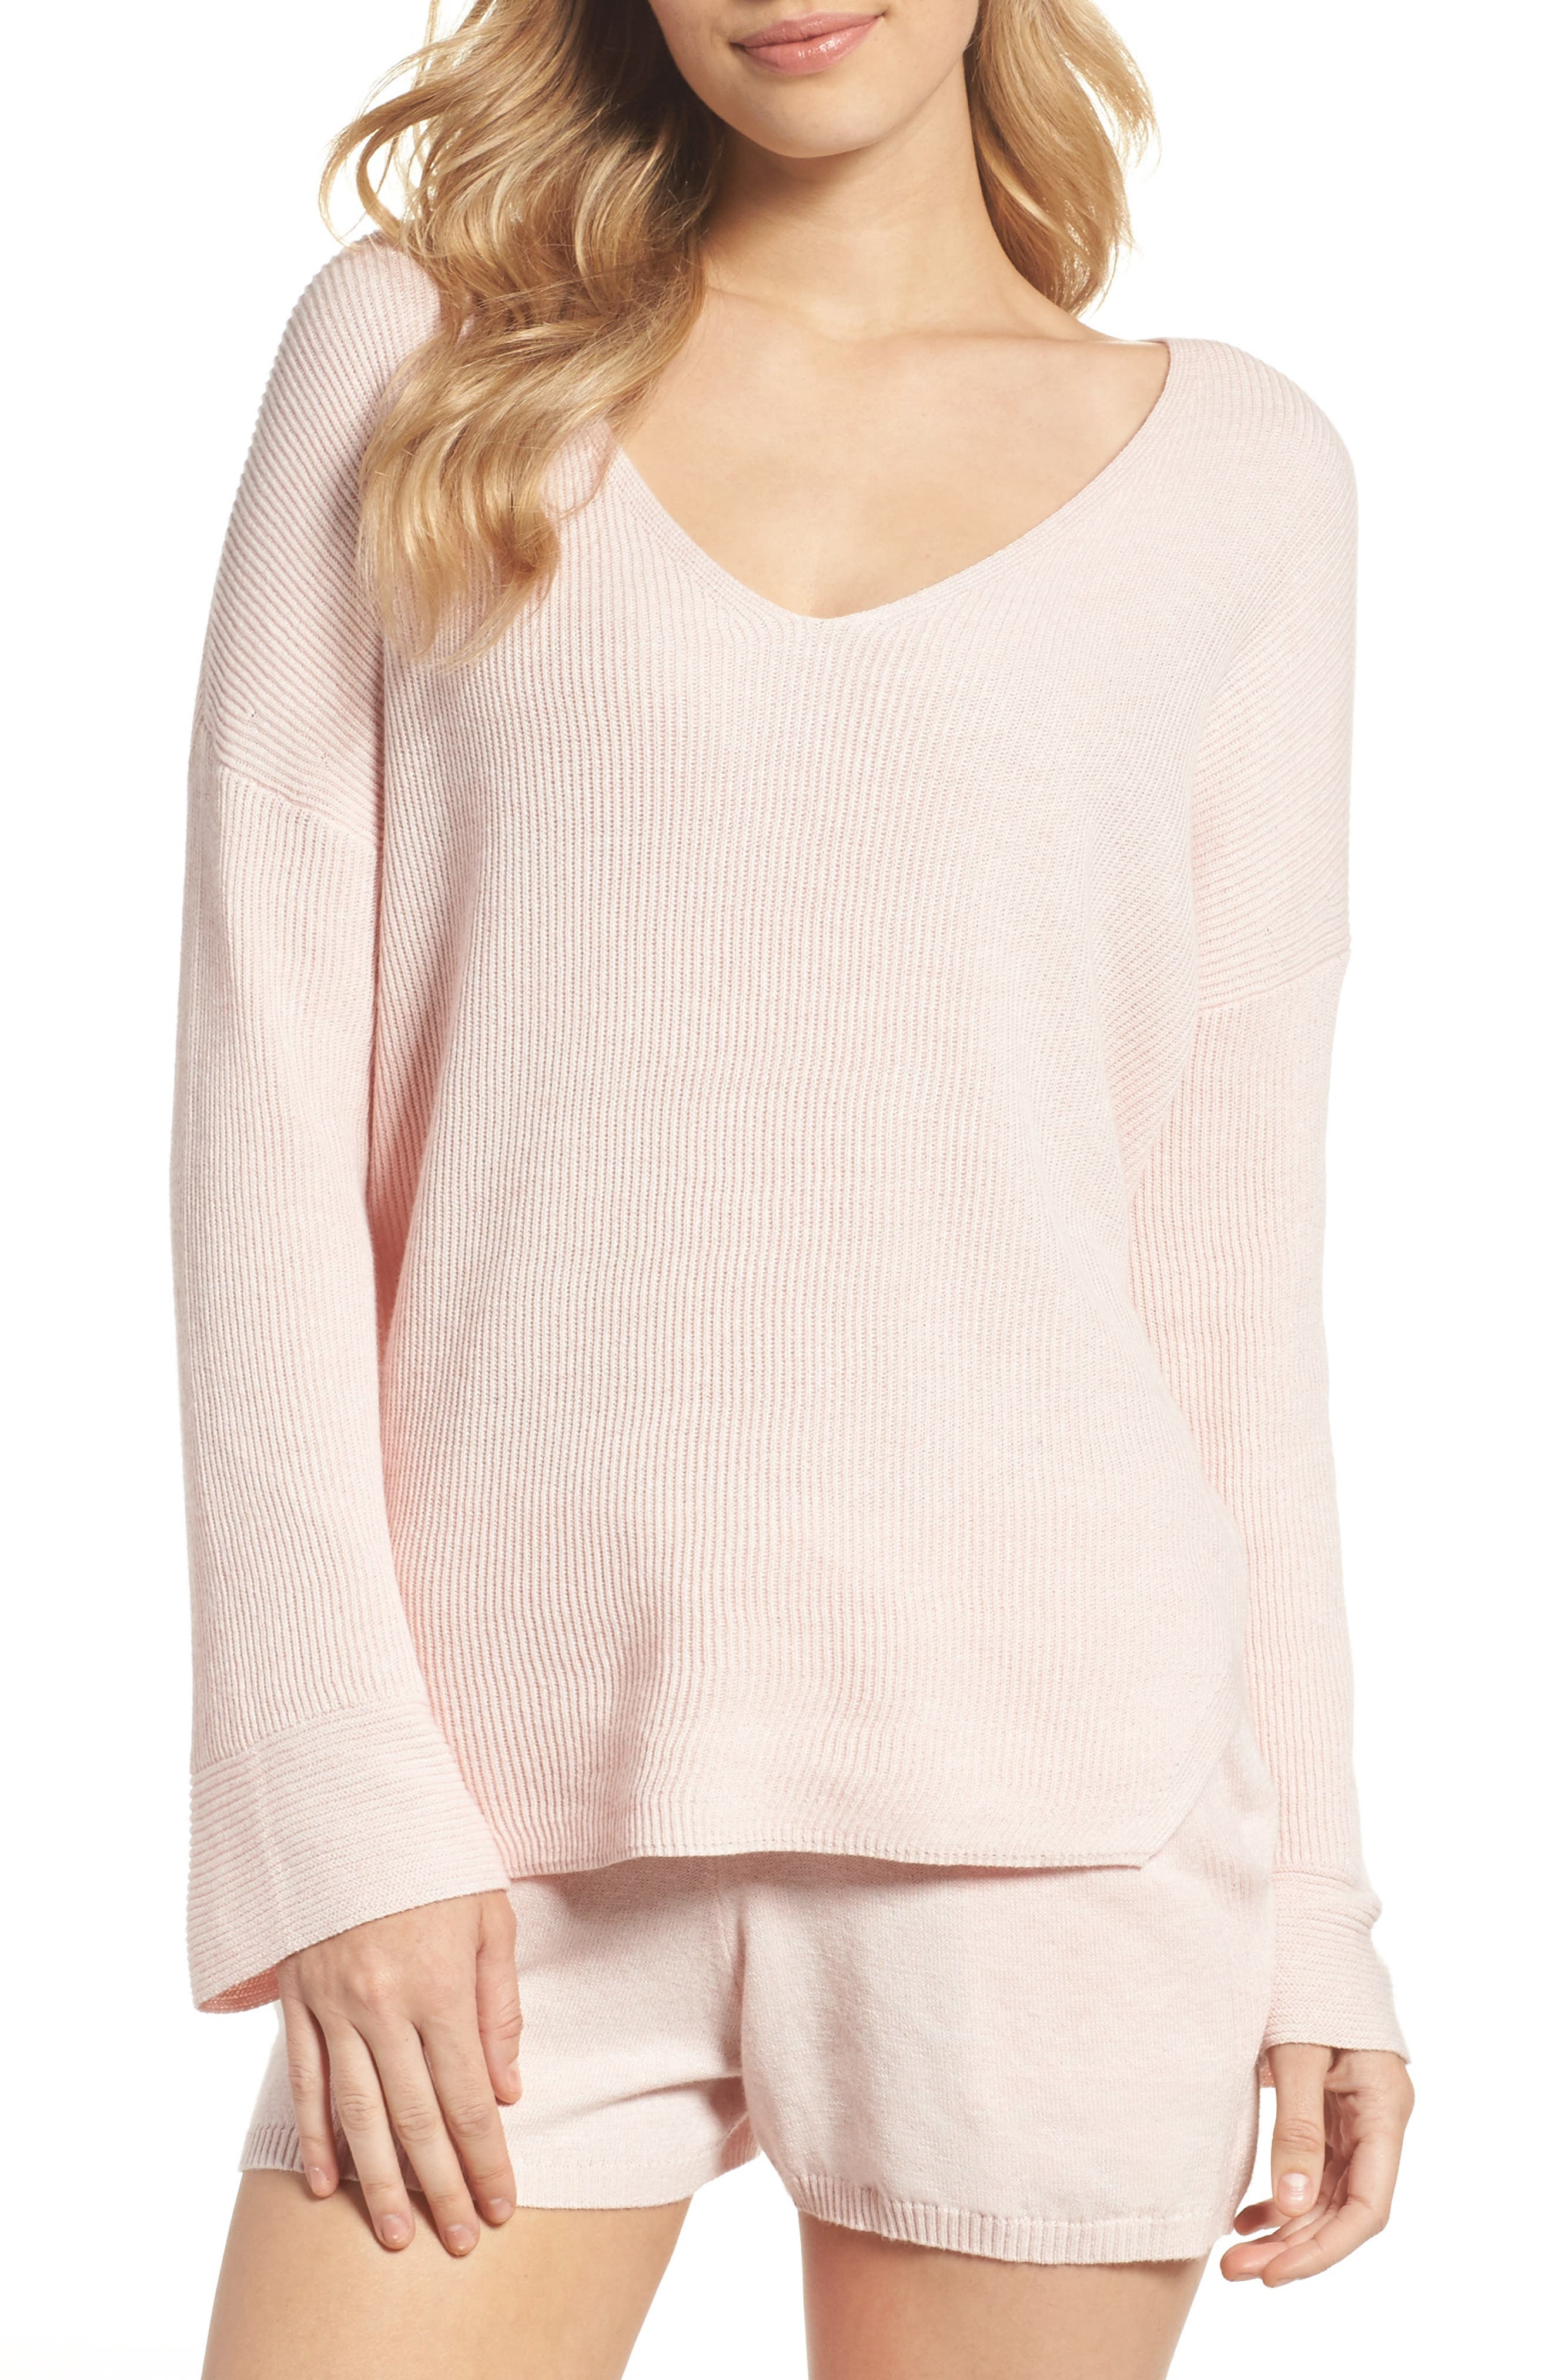 Veronica Lounge Pullover,                             Main thumbnail 1, color,                             Soft Pink